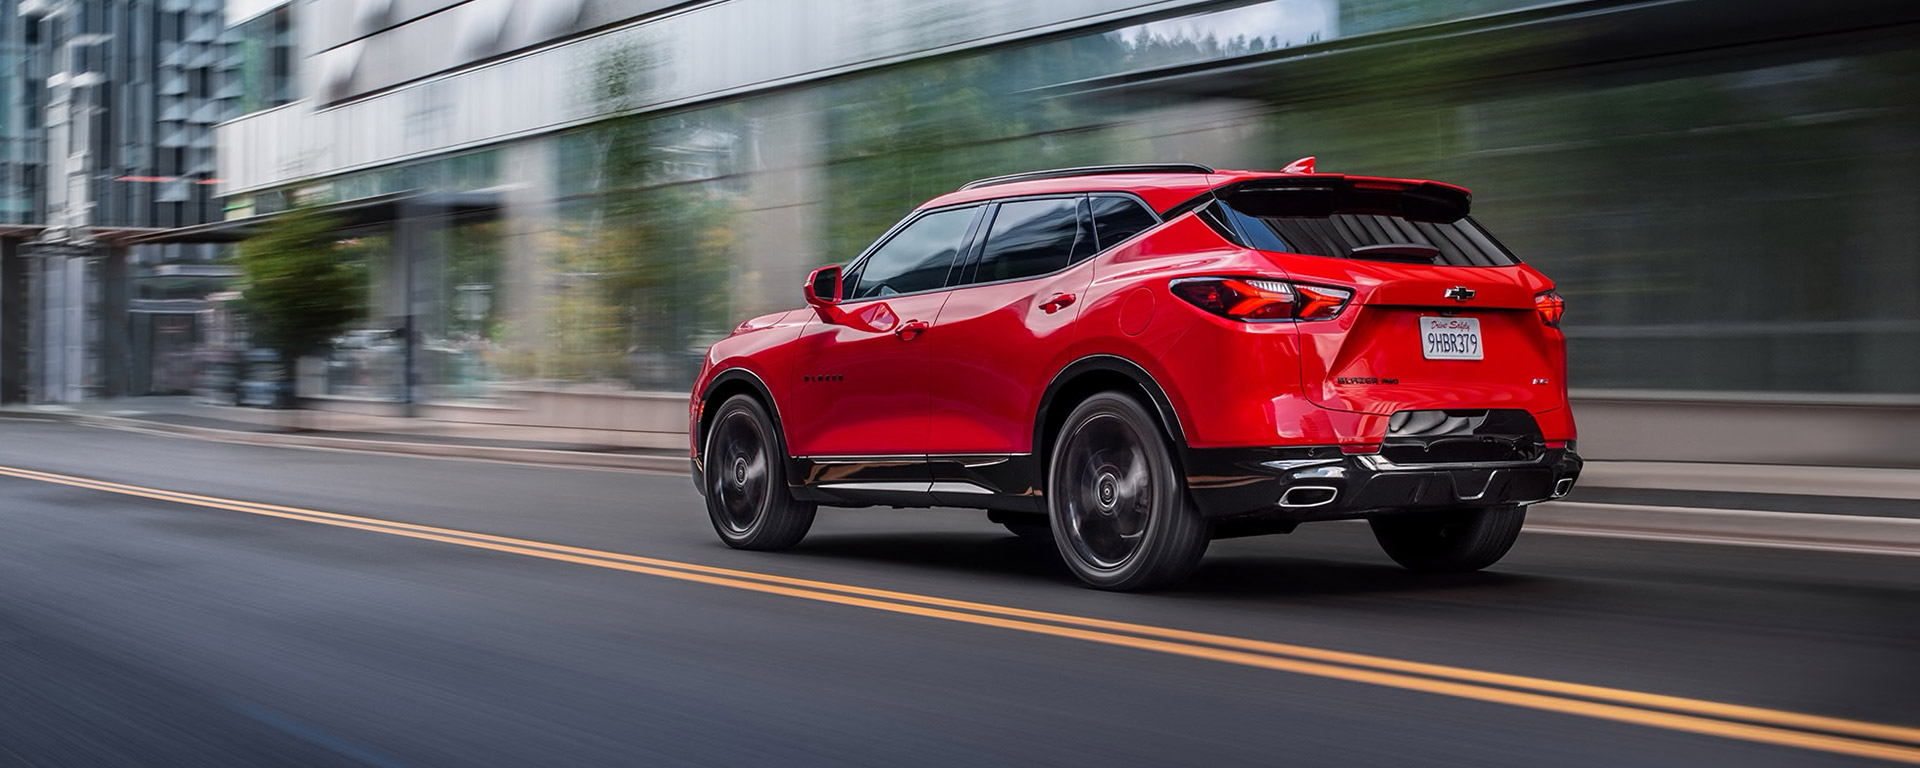 2020 Chevrolet Blazer Driving Down City Road